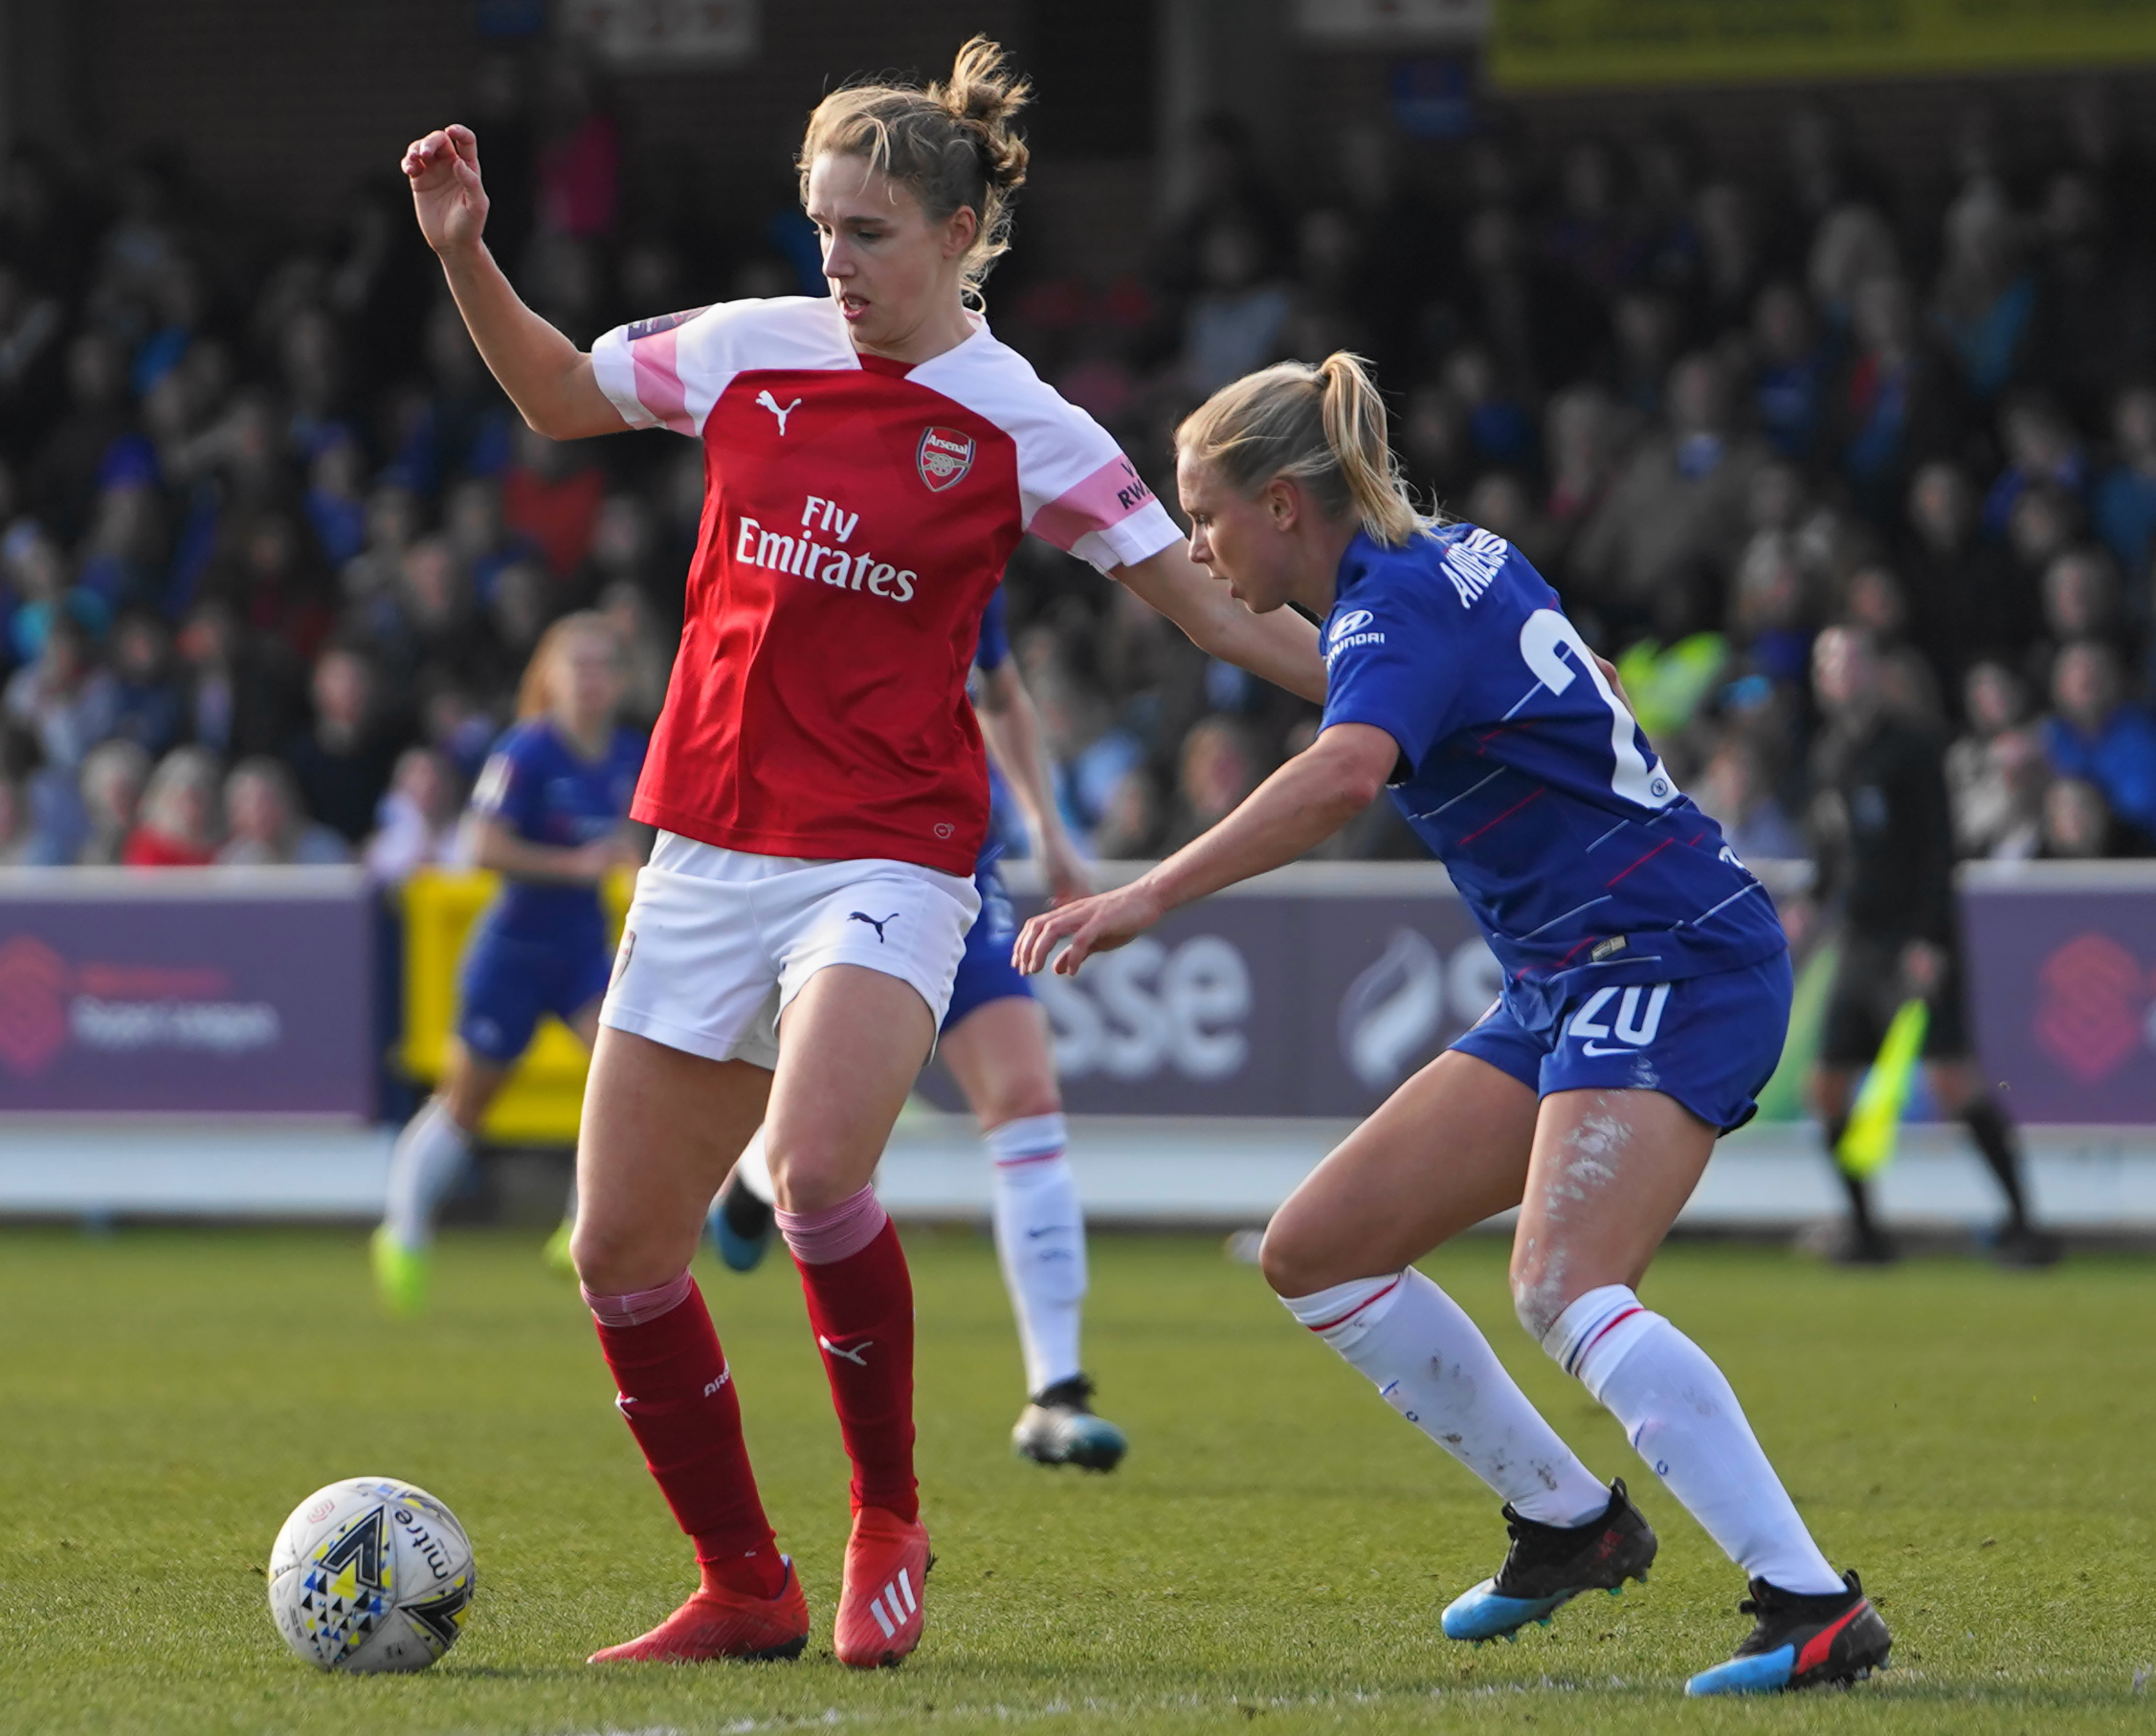 Chelsea v Arsenal - SSE Women's FA Cup 5th Round